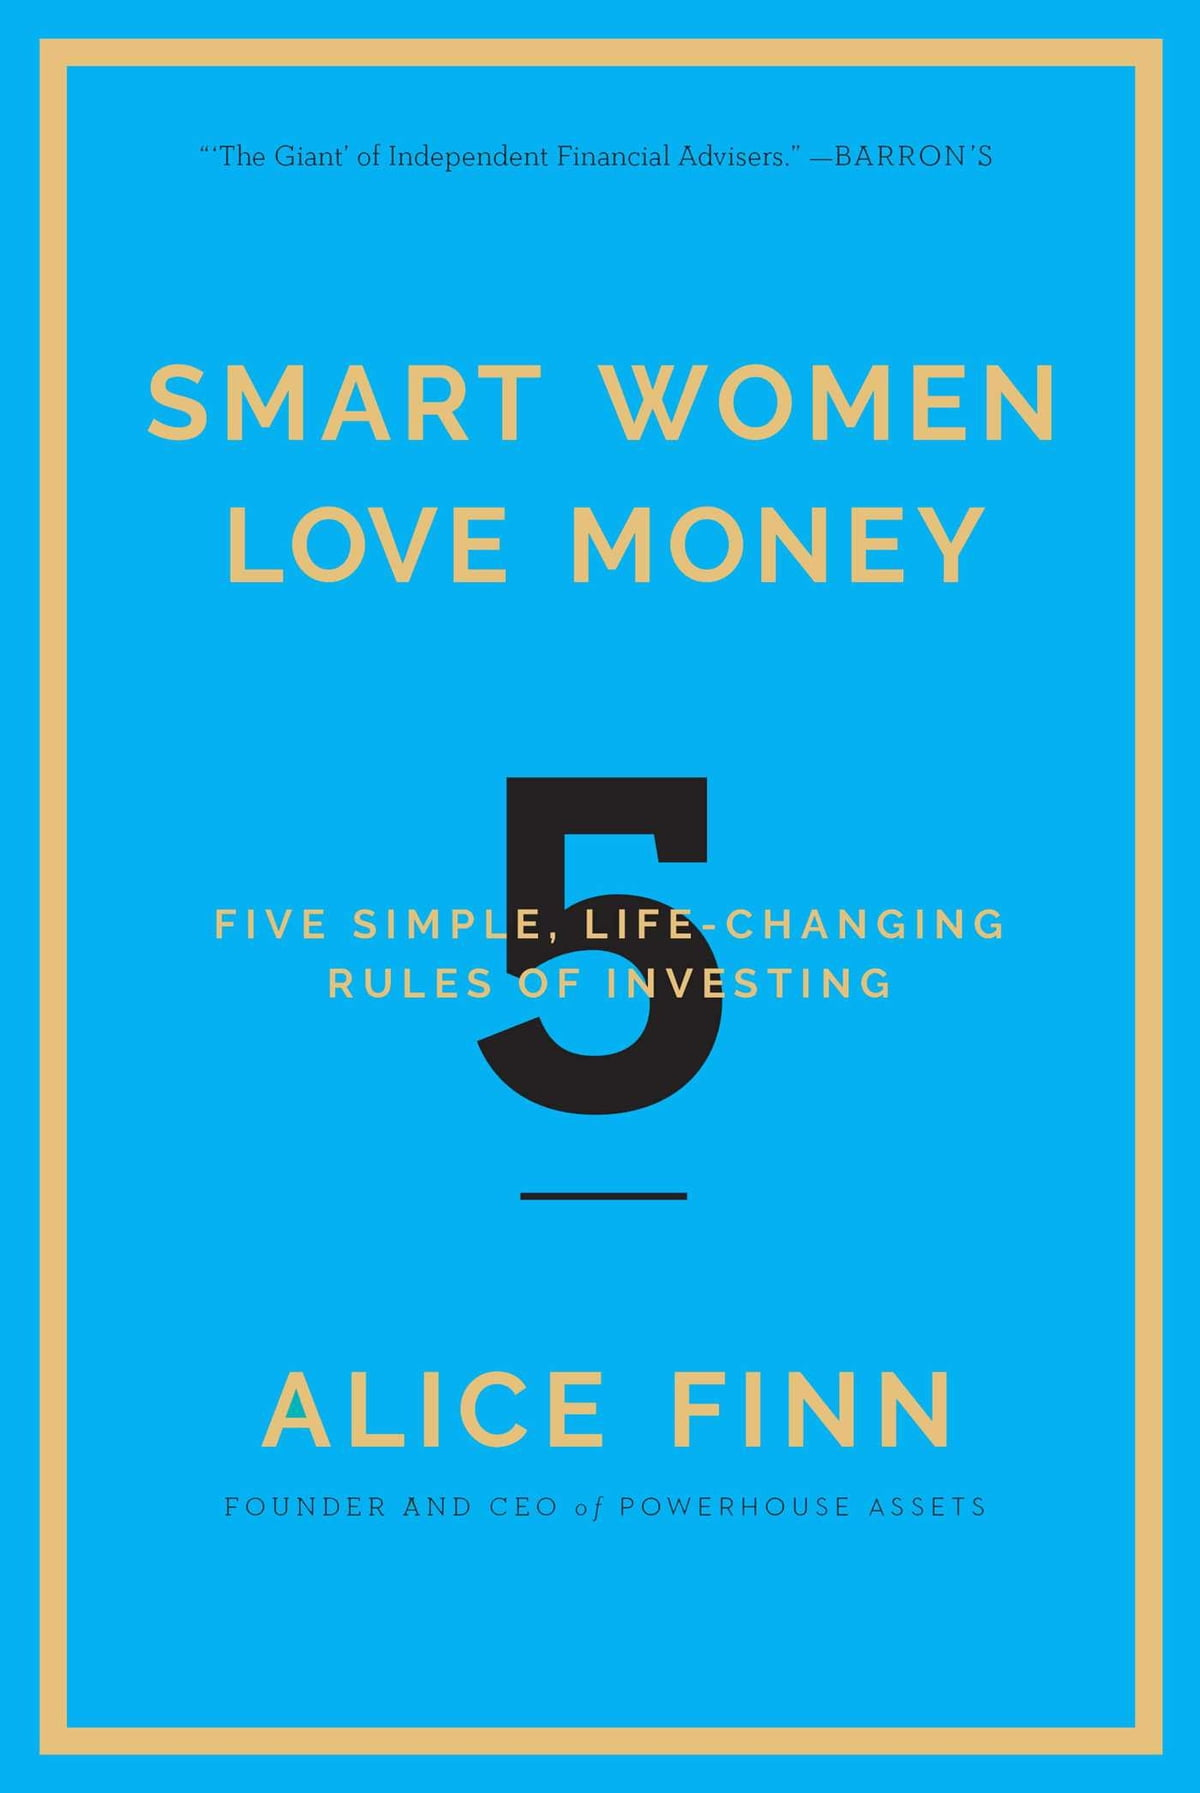 Smart Women Love Money  5 Simple, Lifechanging Rules Of Investing Ebook By